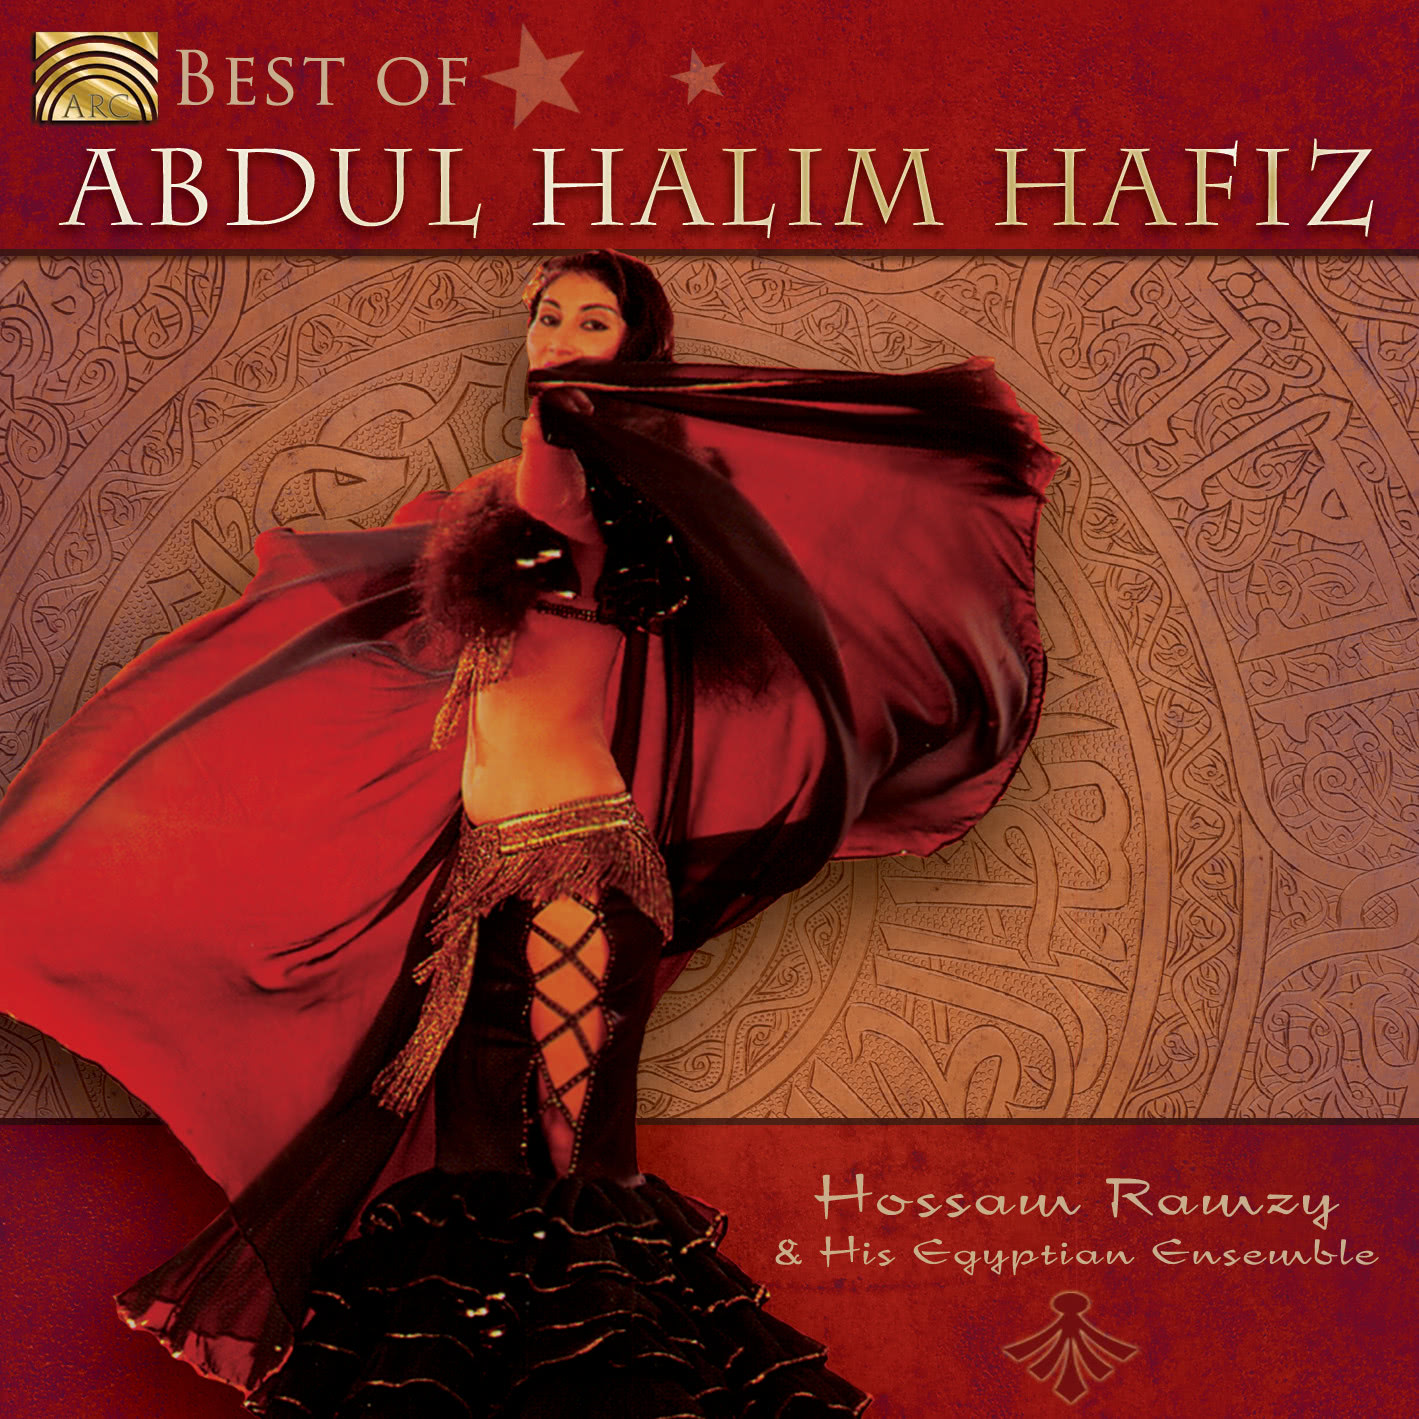 EUCD2430 Best of Abdul Halim Hafiz